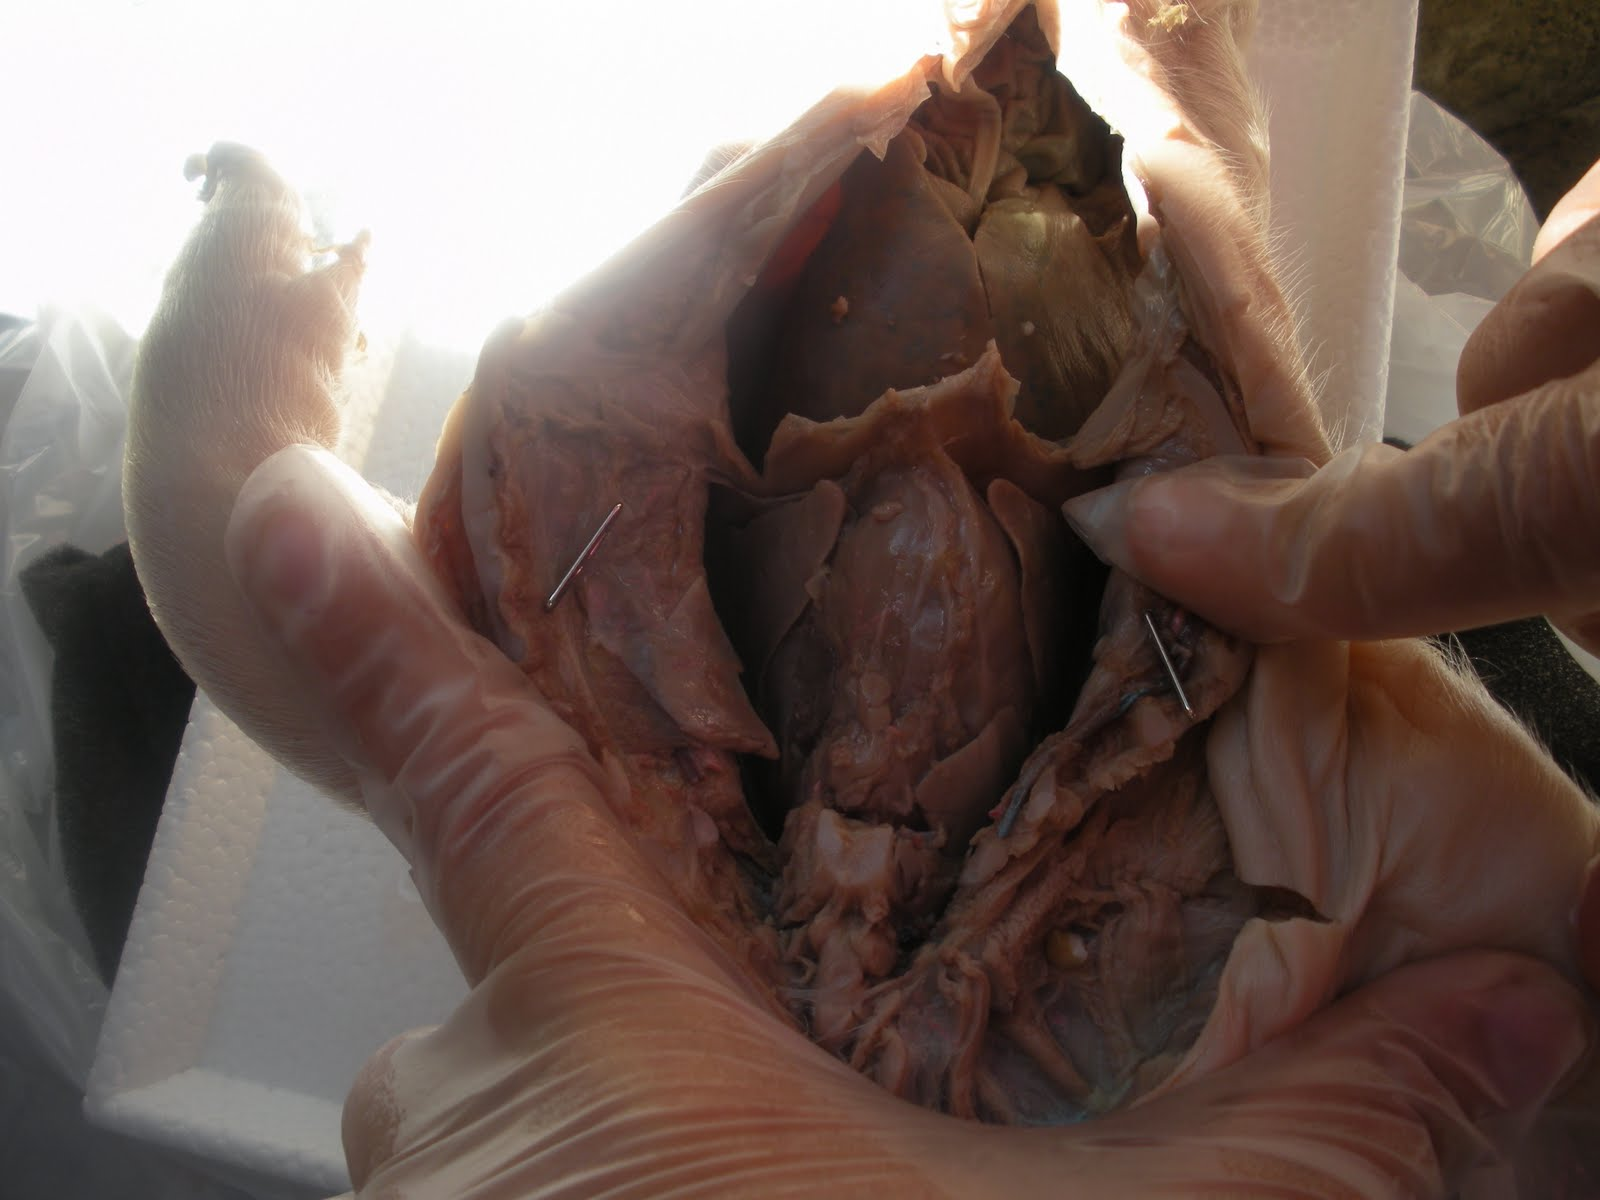 This Is A Photo Of The Dorsal Side Of A Pig S Heart On